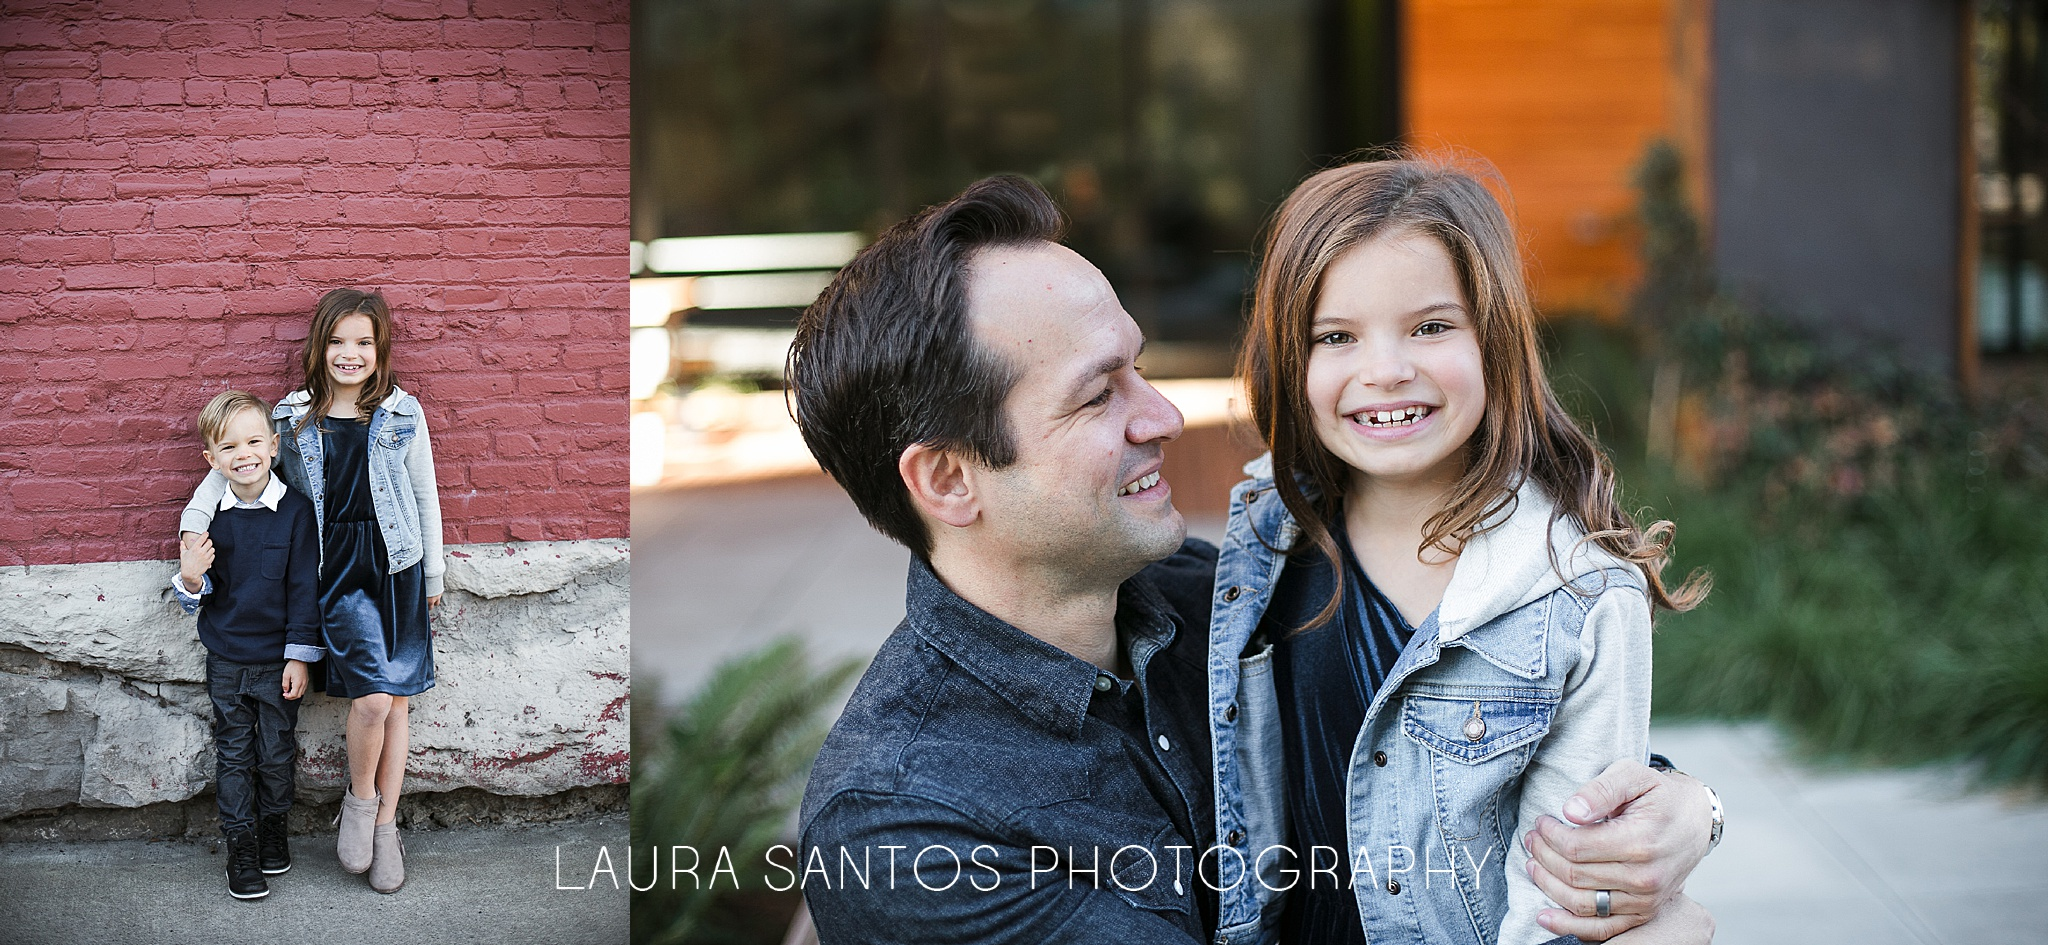 Laura Santos Photography Portland Oregon Family Photographer_0629.jpg